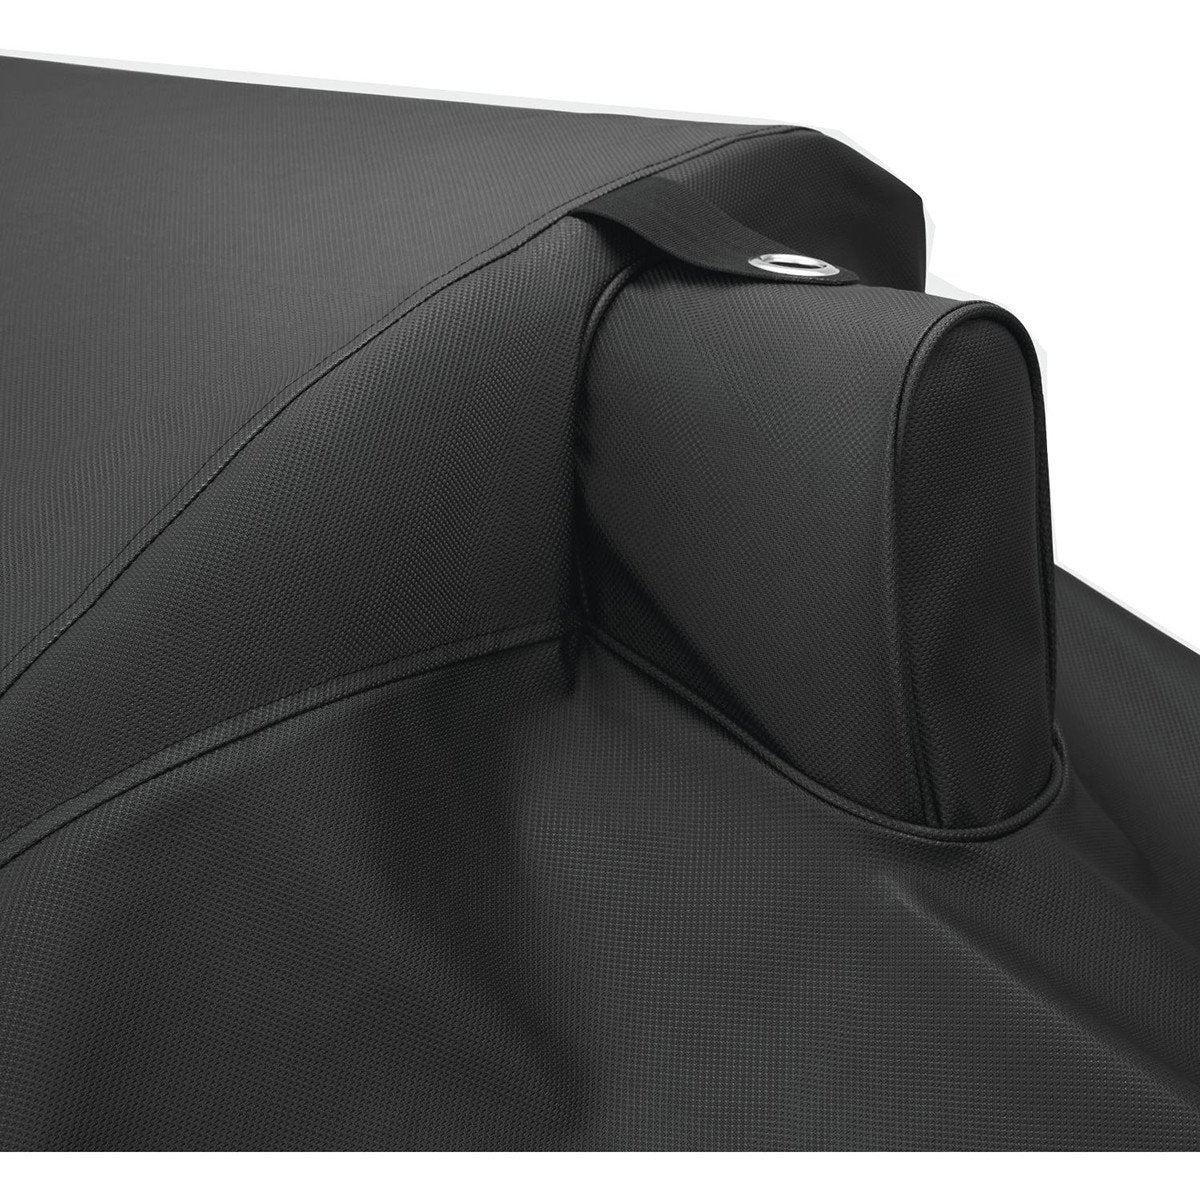 "DCS Grill Cover for 36"" On-Cart"